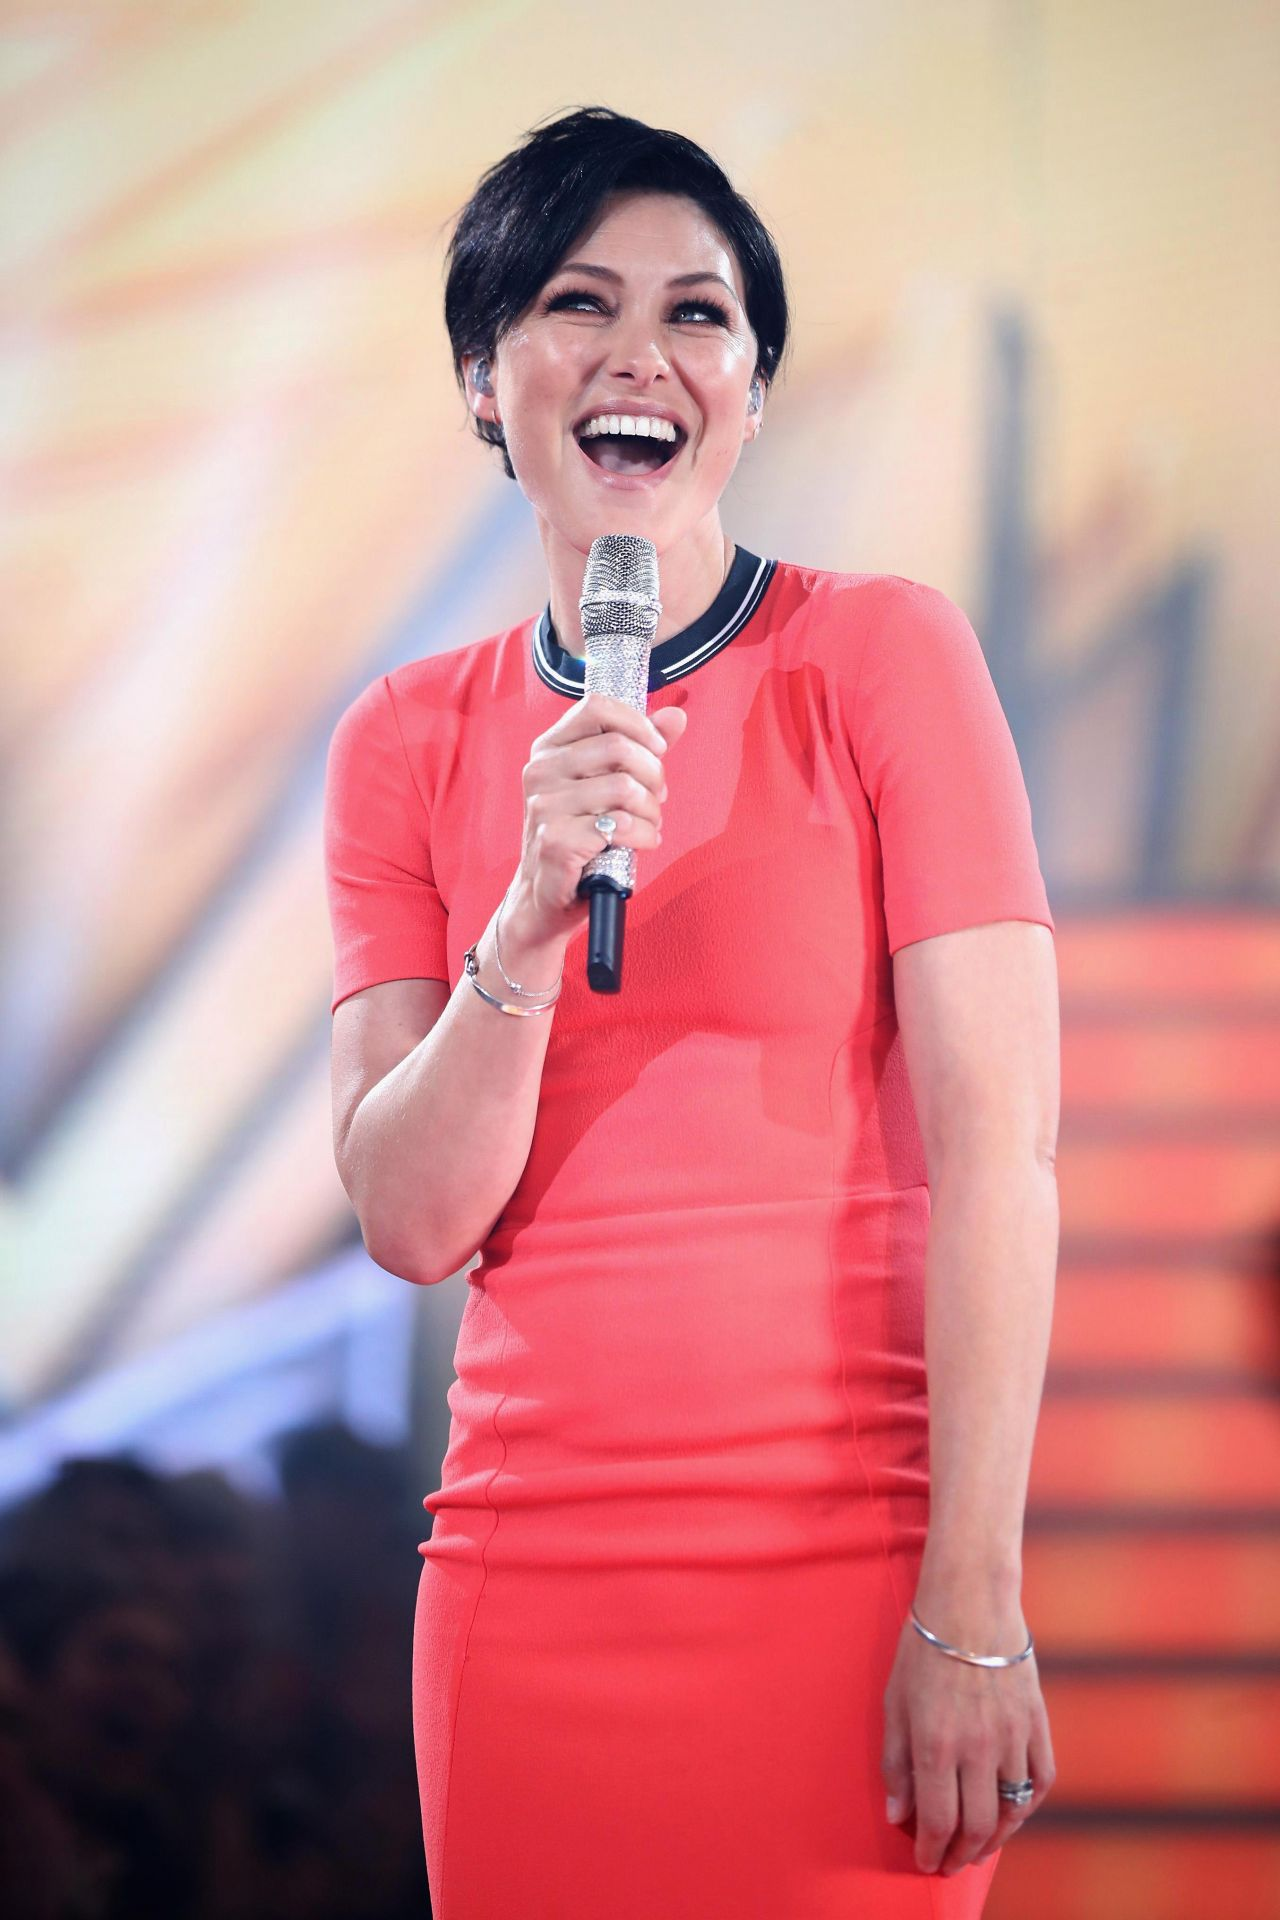 Emma willis celebrity big brother launch night in england nude (87 photos), Topless Celebrity photo